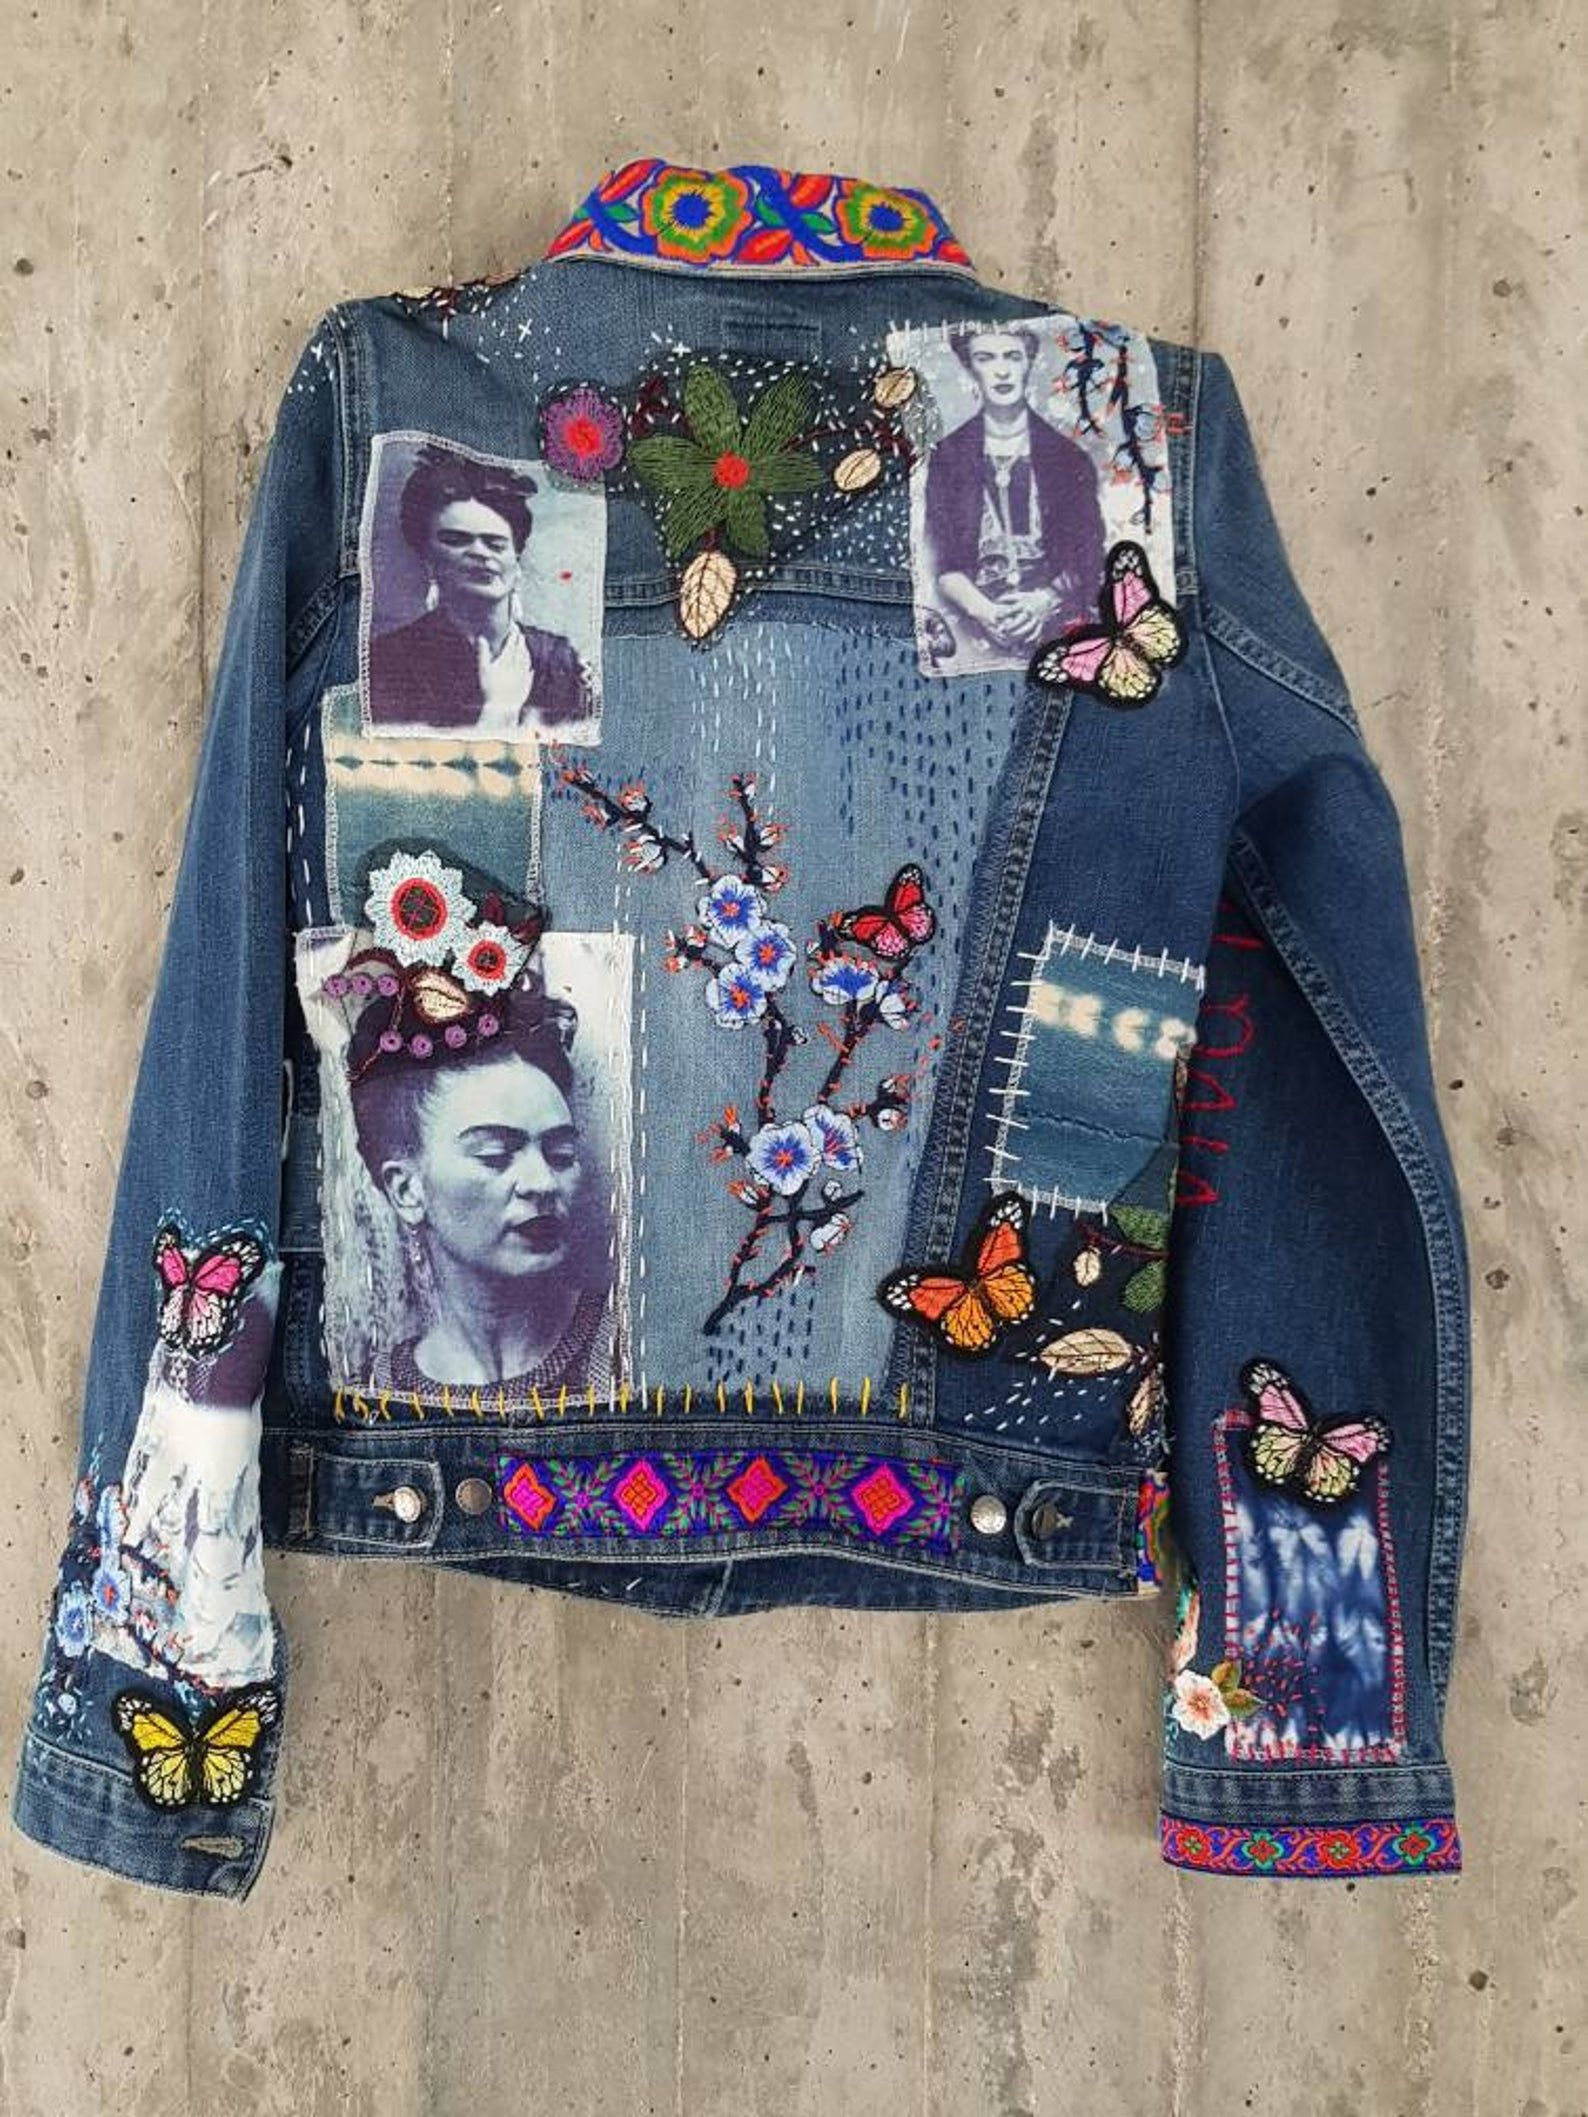 Damaged Vintage Levi's Denim Jacket/Jean Jacket from 80's/Grunge